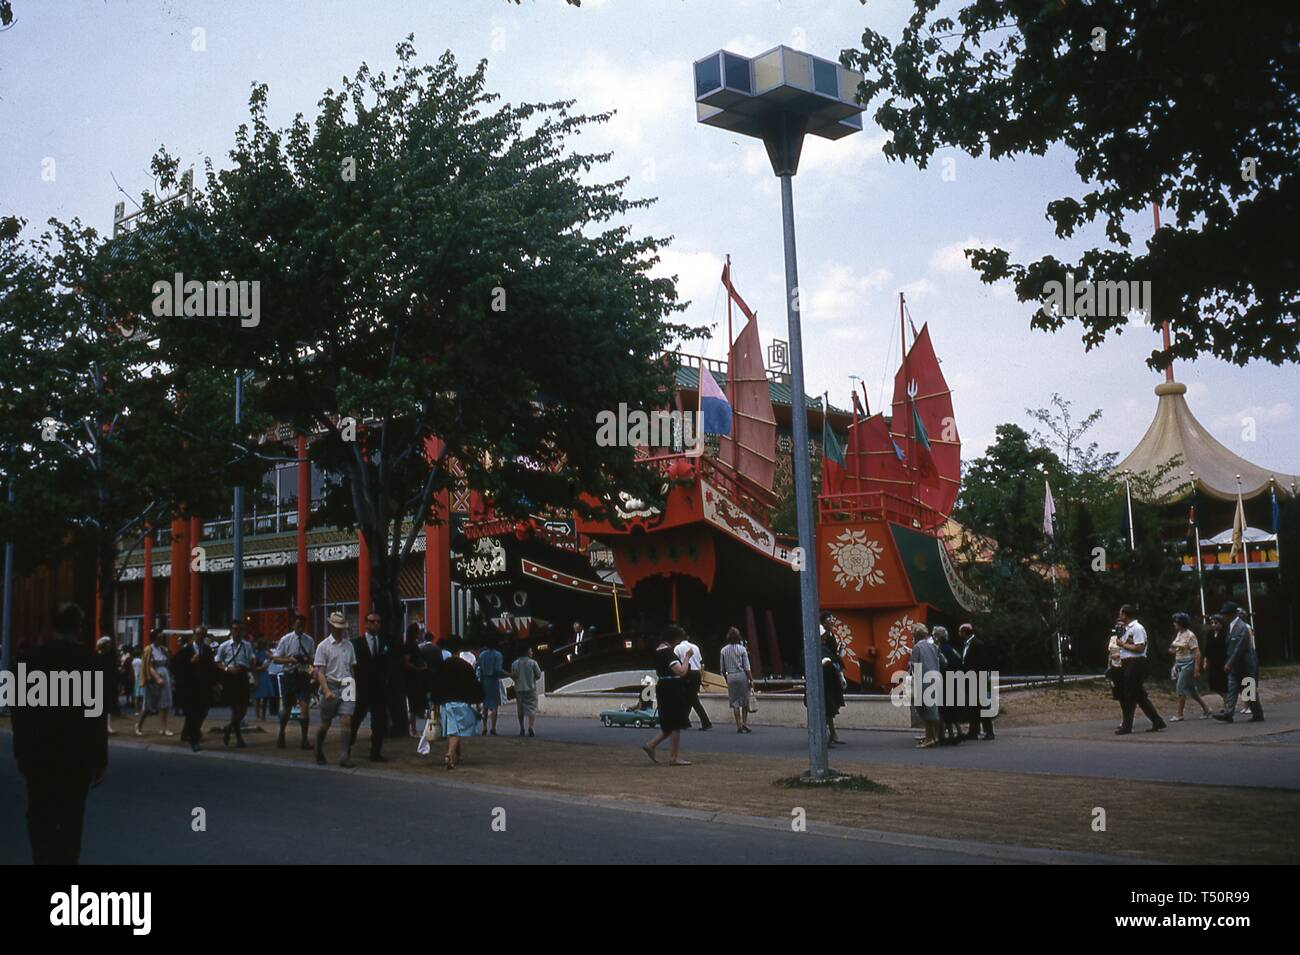 People walking on a sidewalk near mock Chinese junks that formed part of the Hong Kong Pavilion during the New York World's Fair, Flushing Meadows Park, Queens, NY, June 1964. () Stock Photo